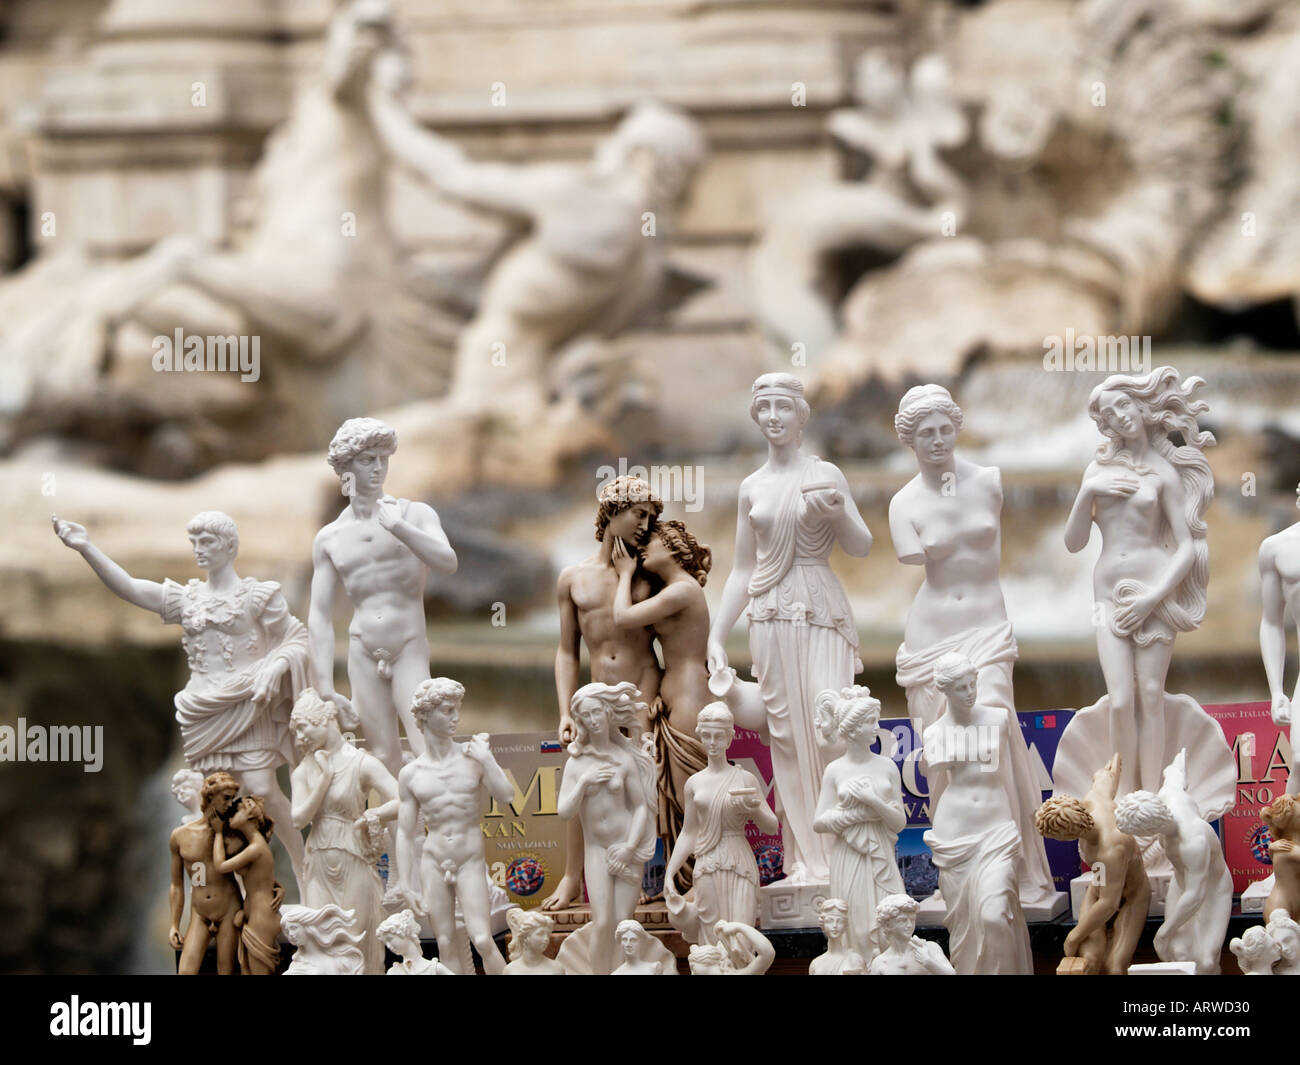 Closeup of a row of typical roman souvenir statues image taken in front of the Trevi fountain Rome Lazio Italy Stock Photo